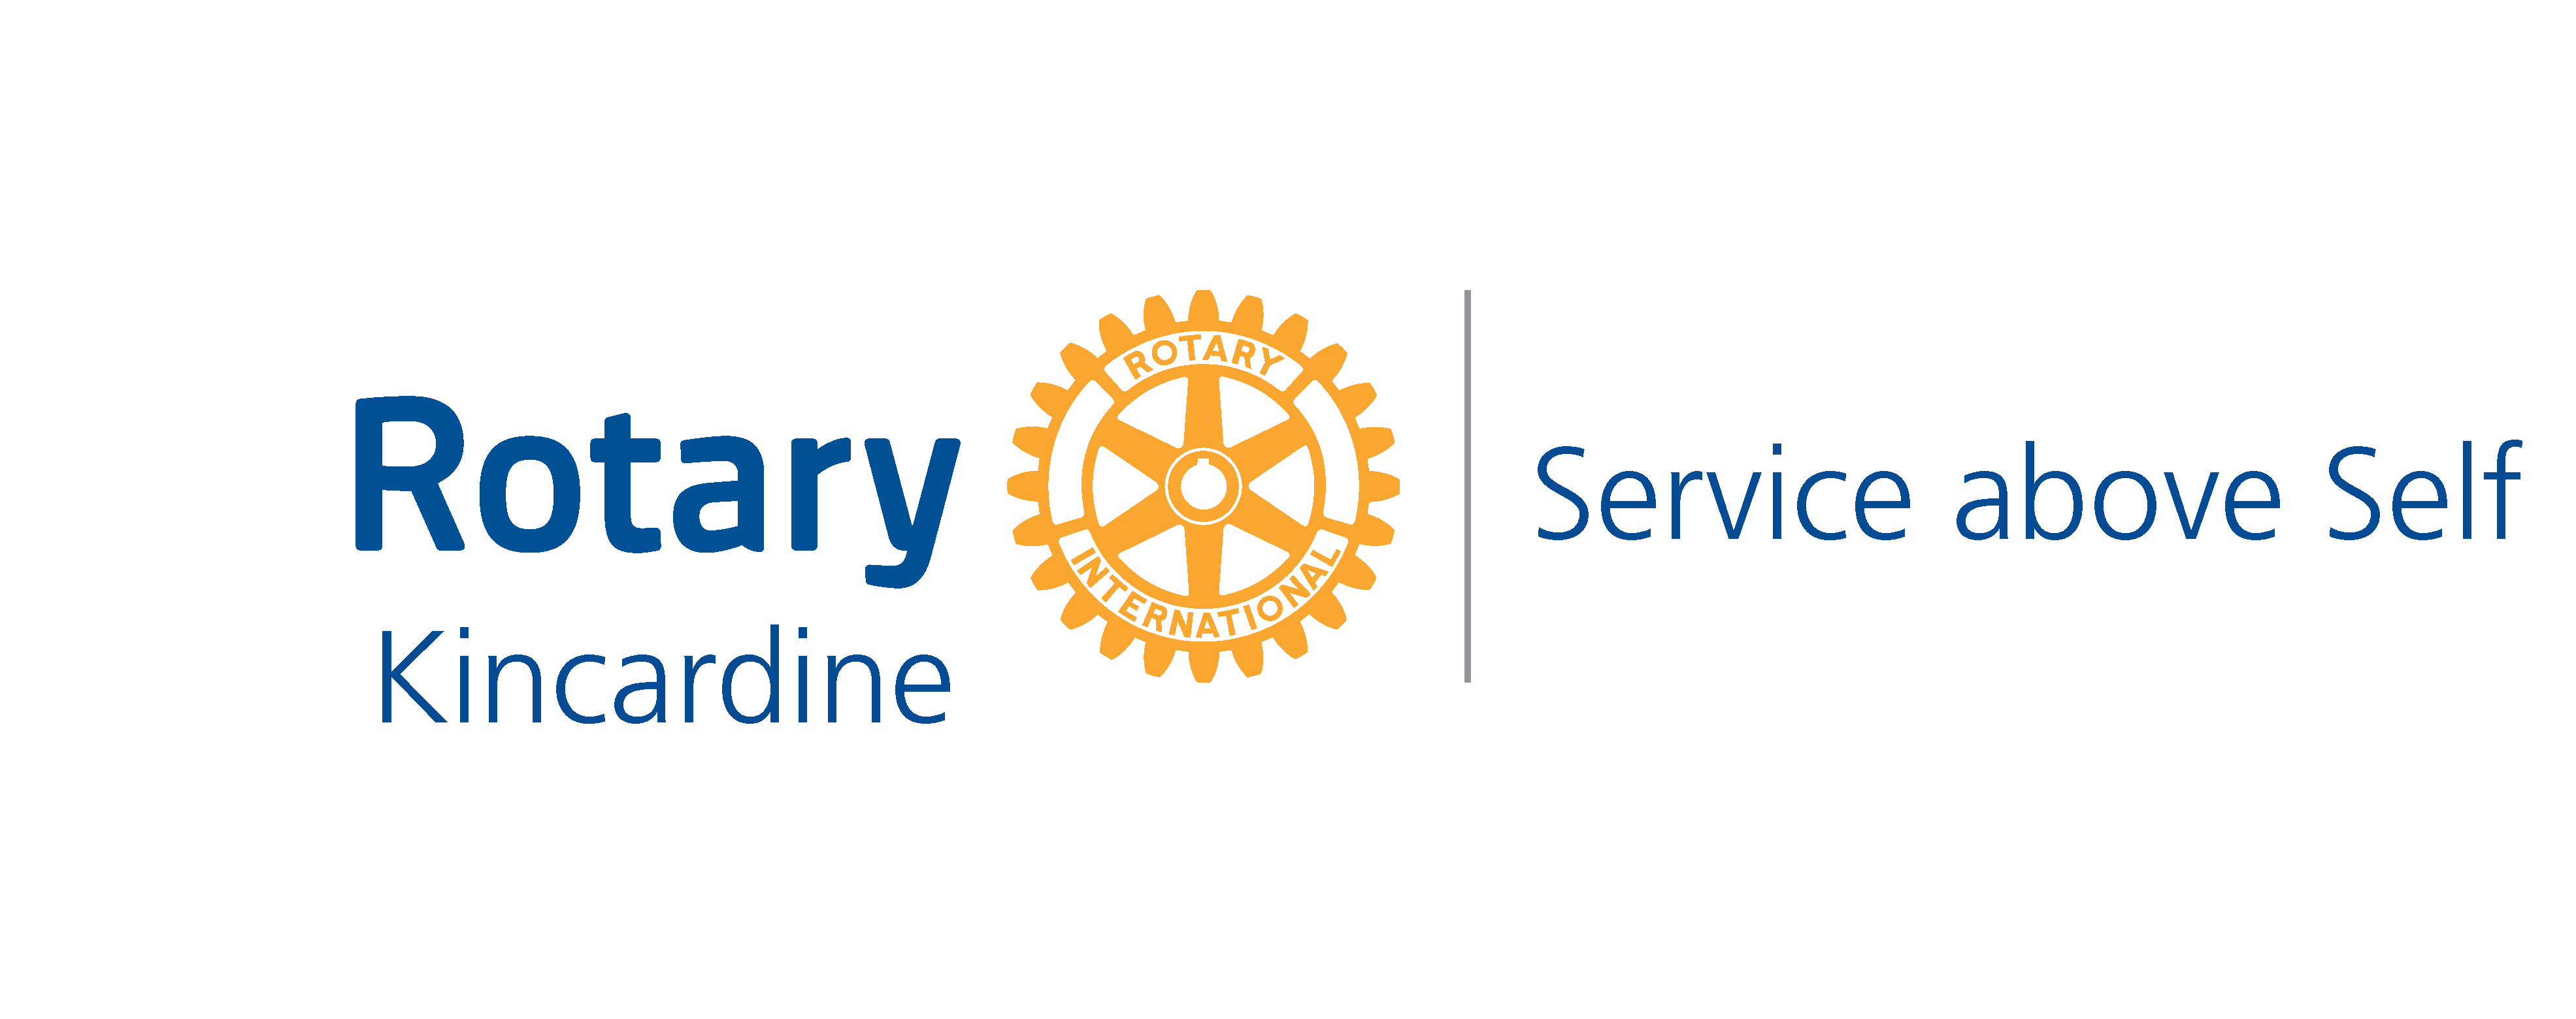 Rotary Club of Kincardine logo